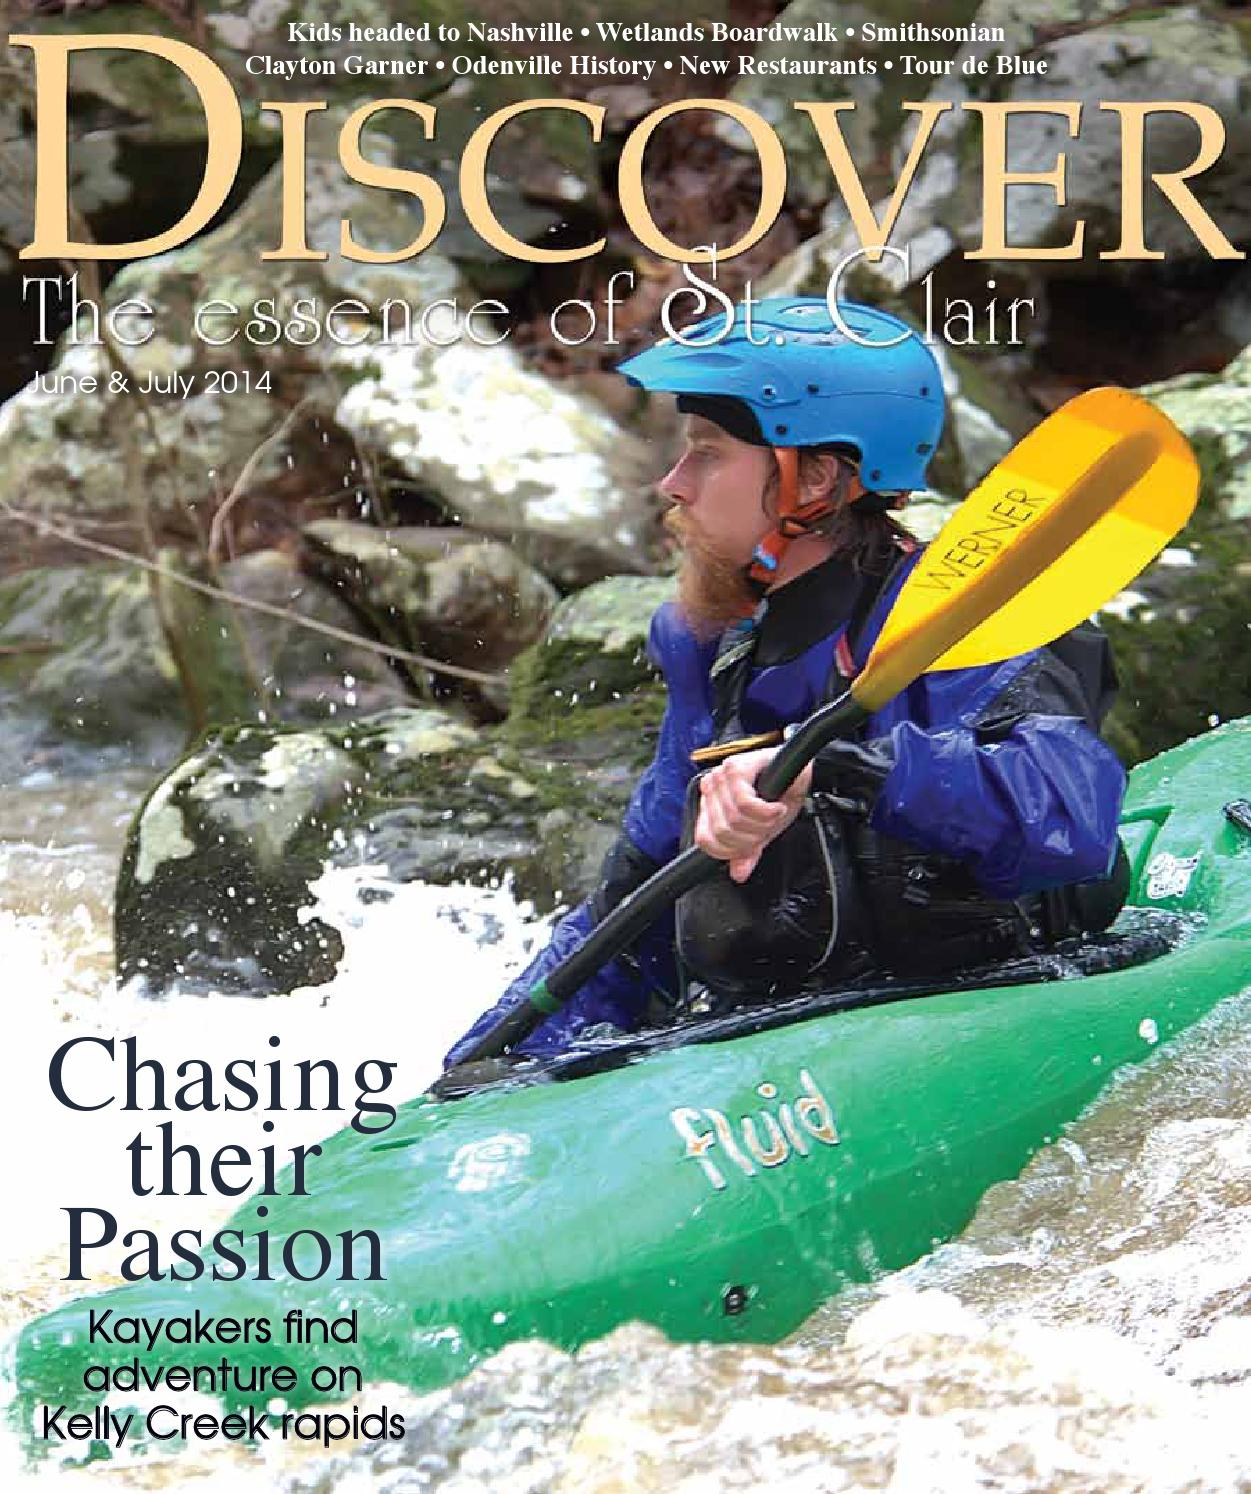 Alabama saint clair county odenville - Discover St Clair June July 2014 By Discover The Essence Of St Clair Issuu